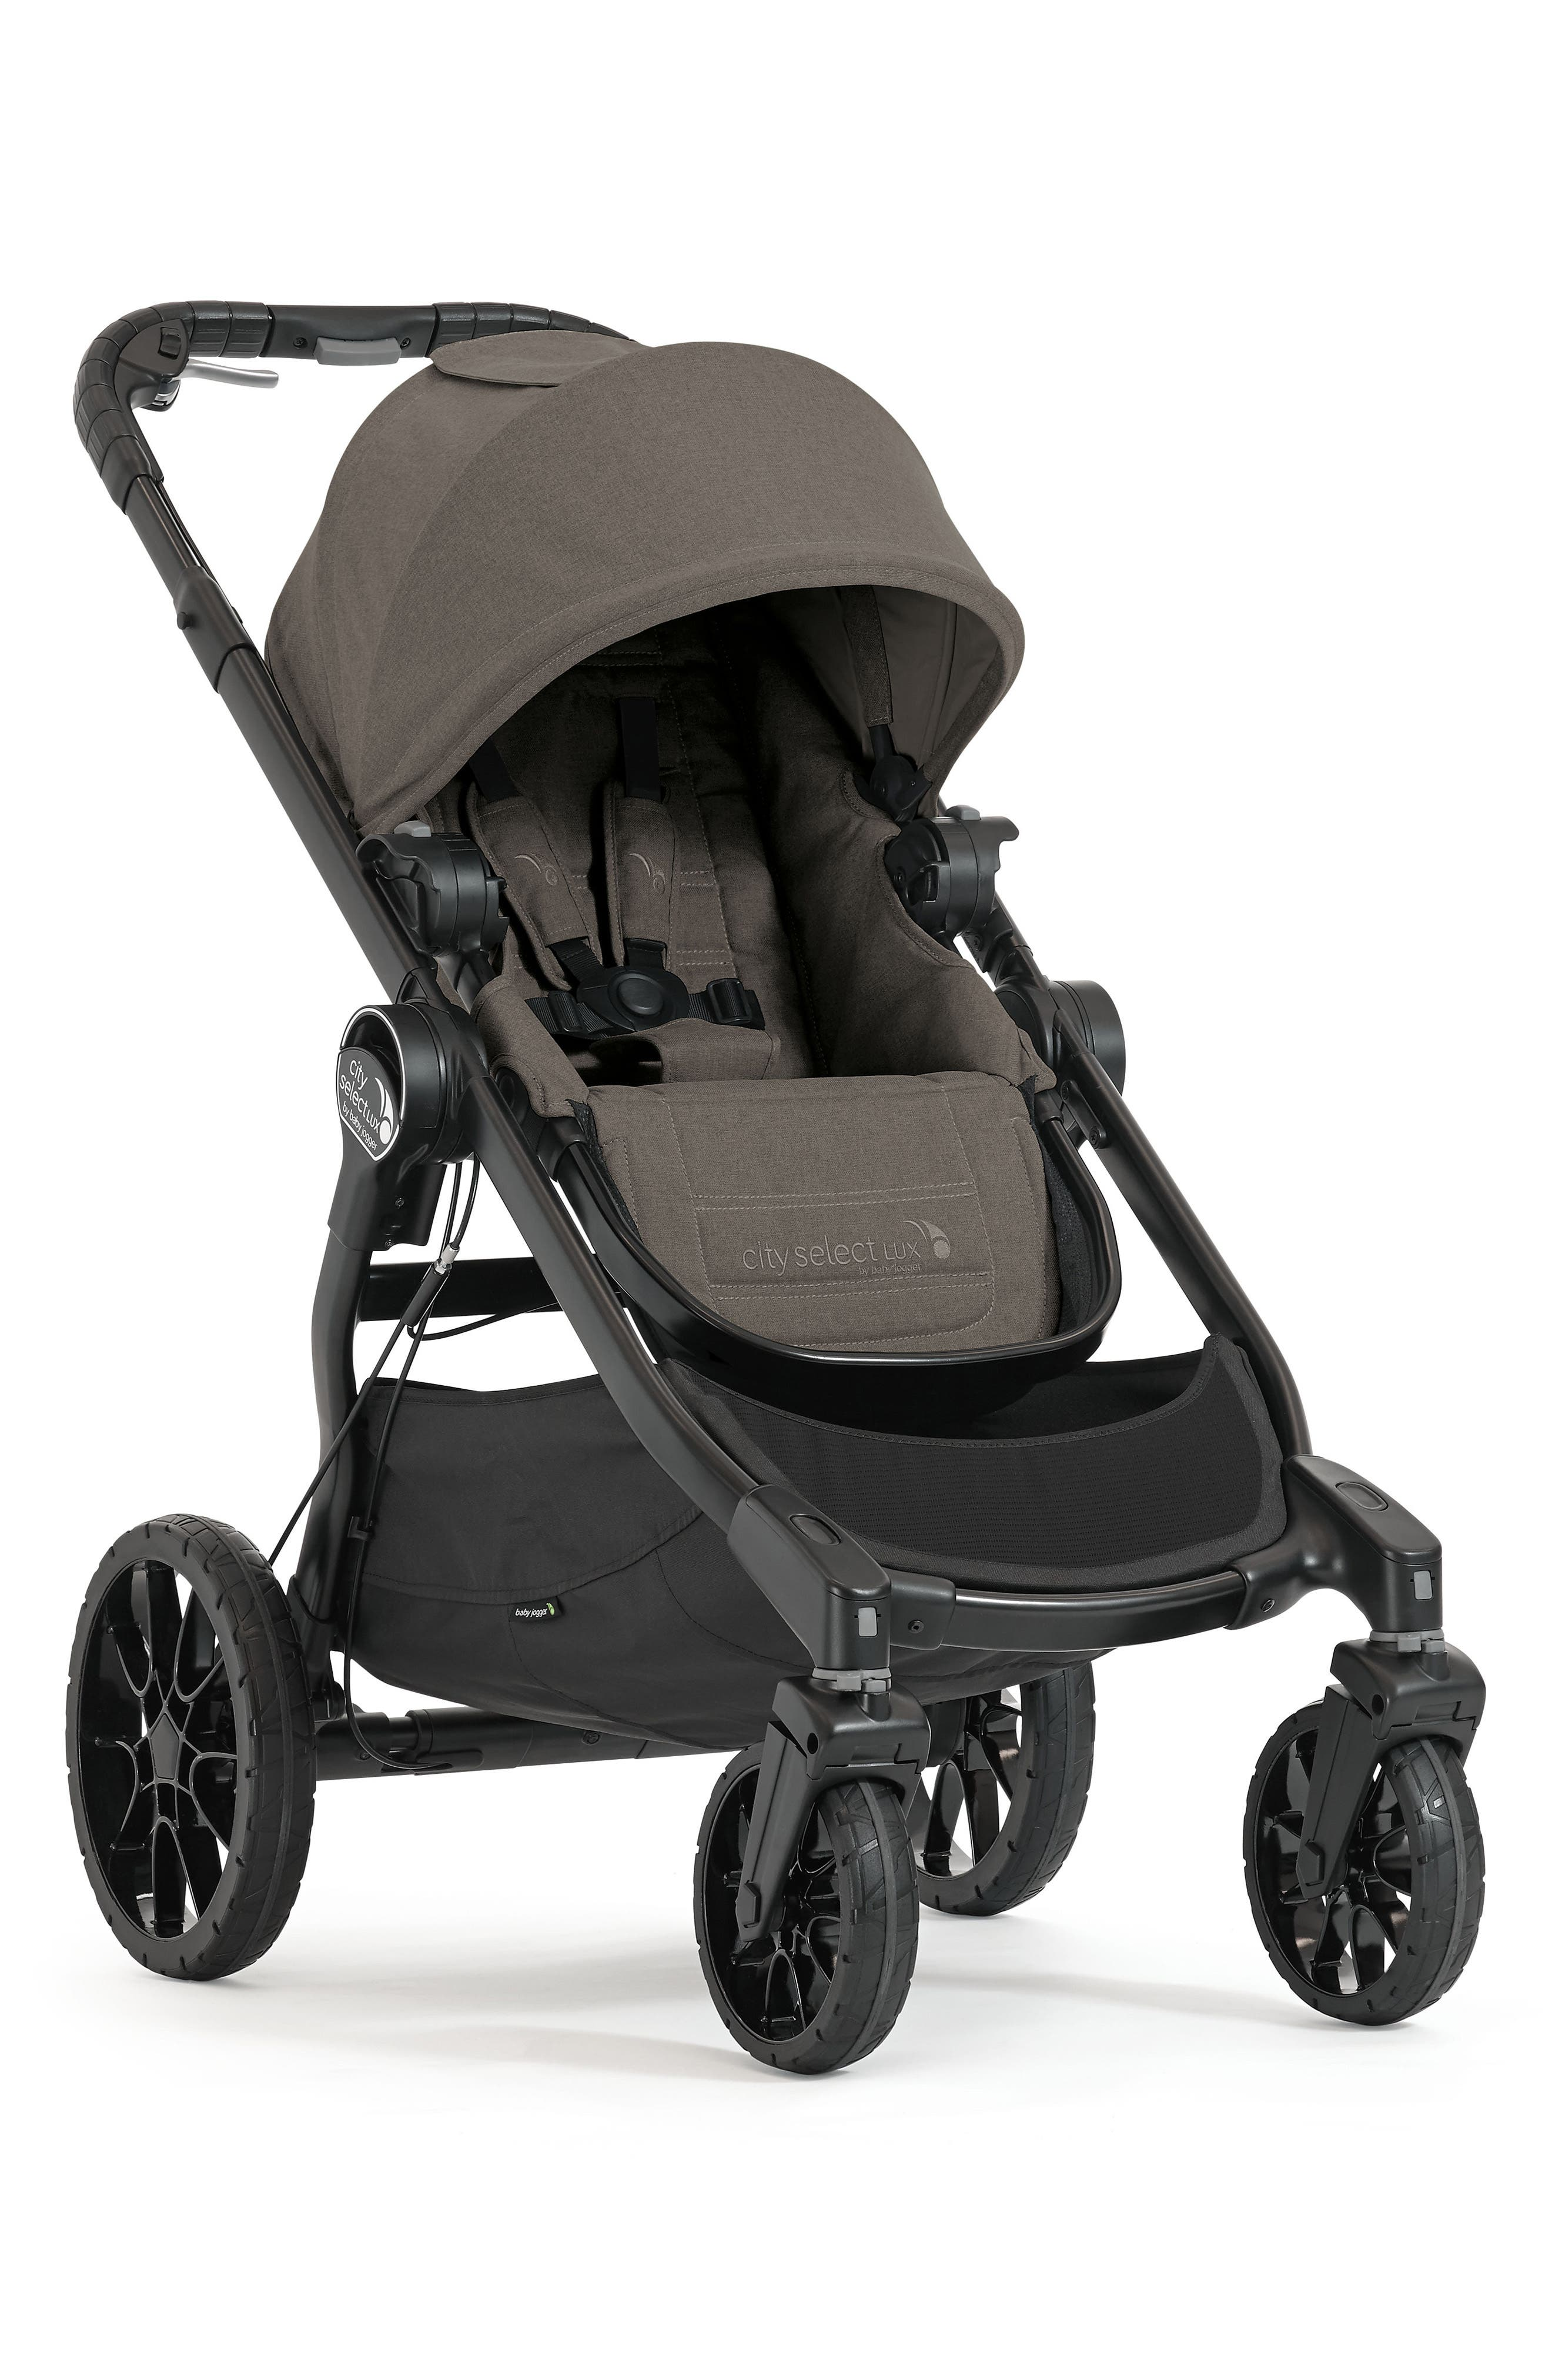 Alternate Image 1 Selected - Baby Jogger City Select LUX 2017 Stroller